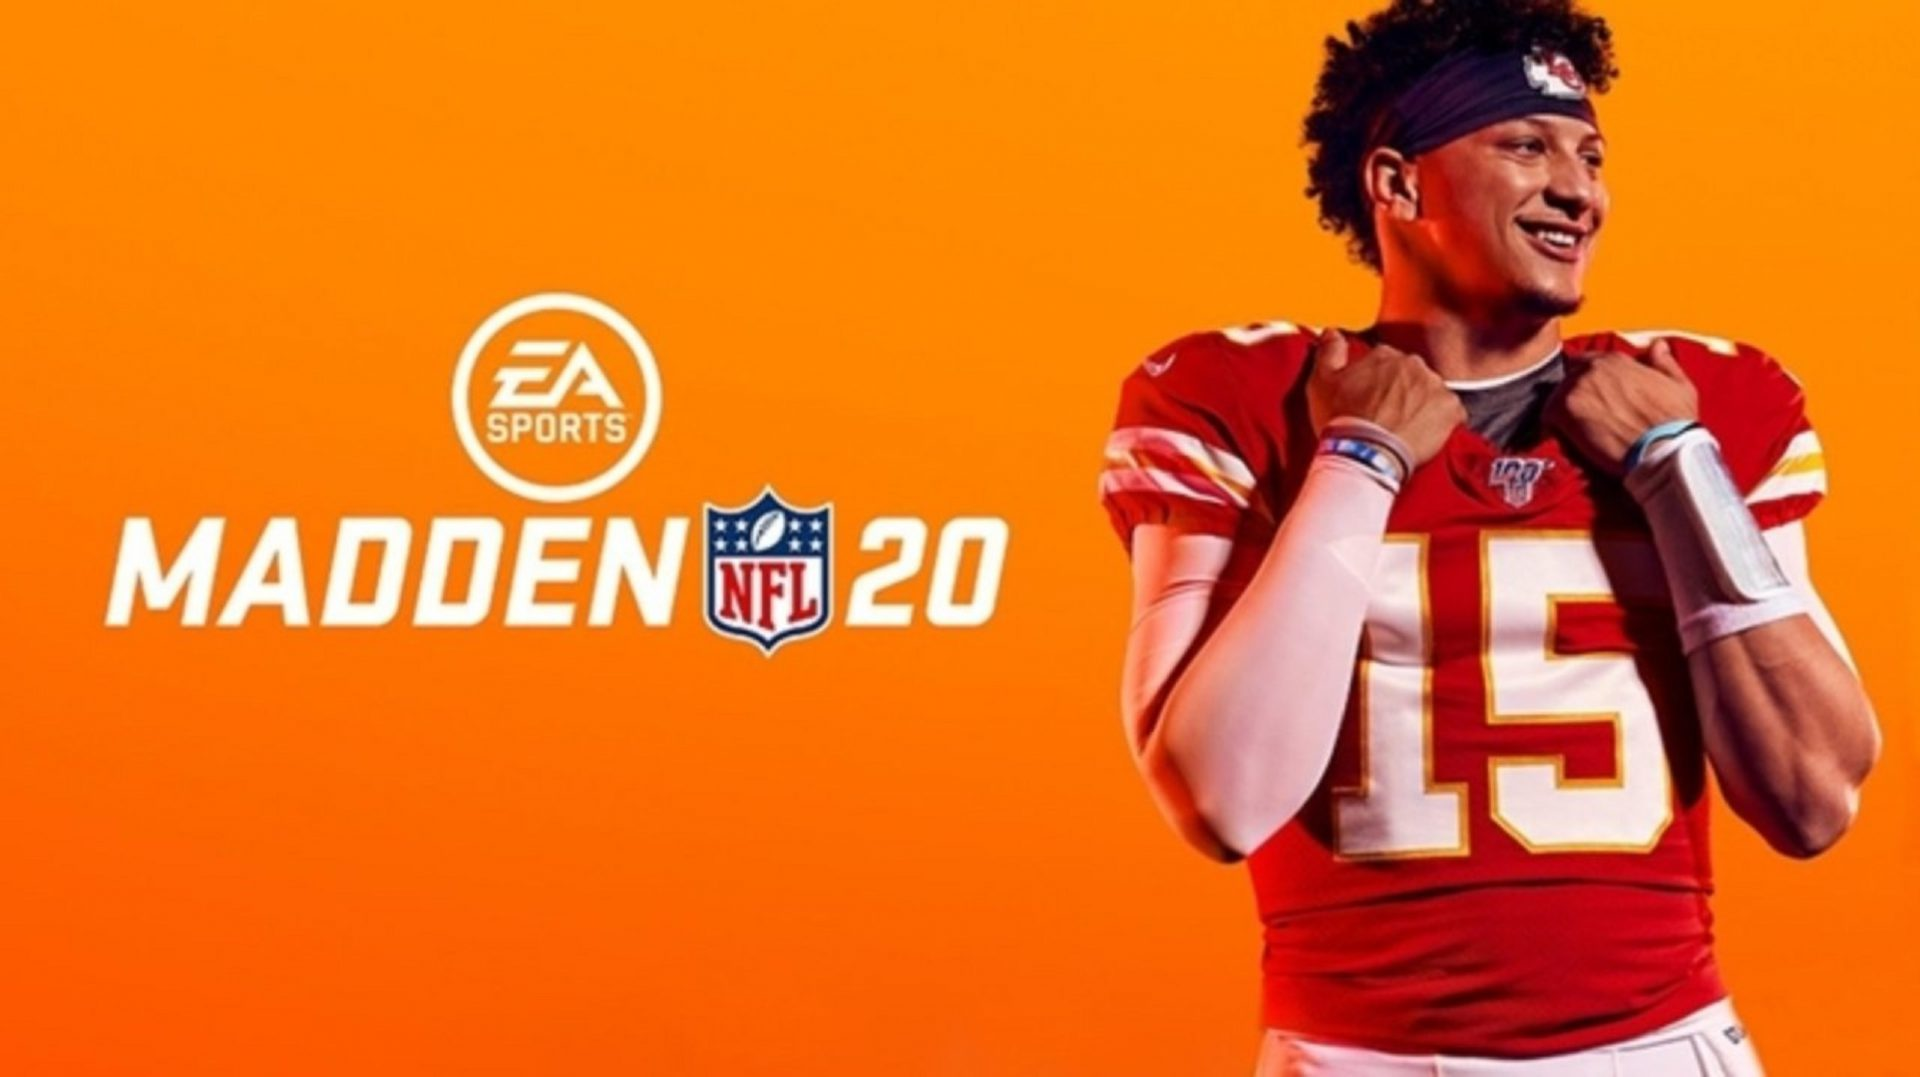 I SpanishBowl Madden League: Inscripciones abiertas